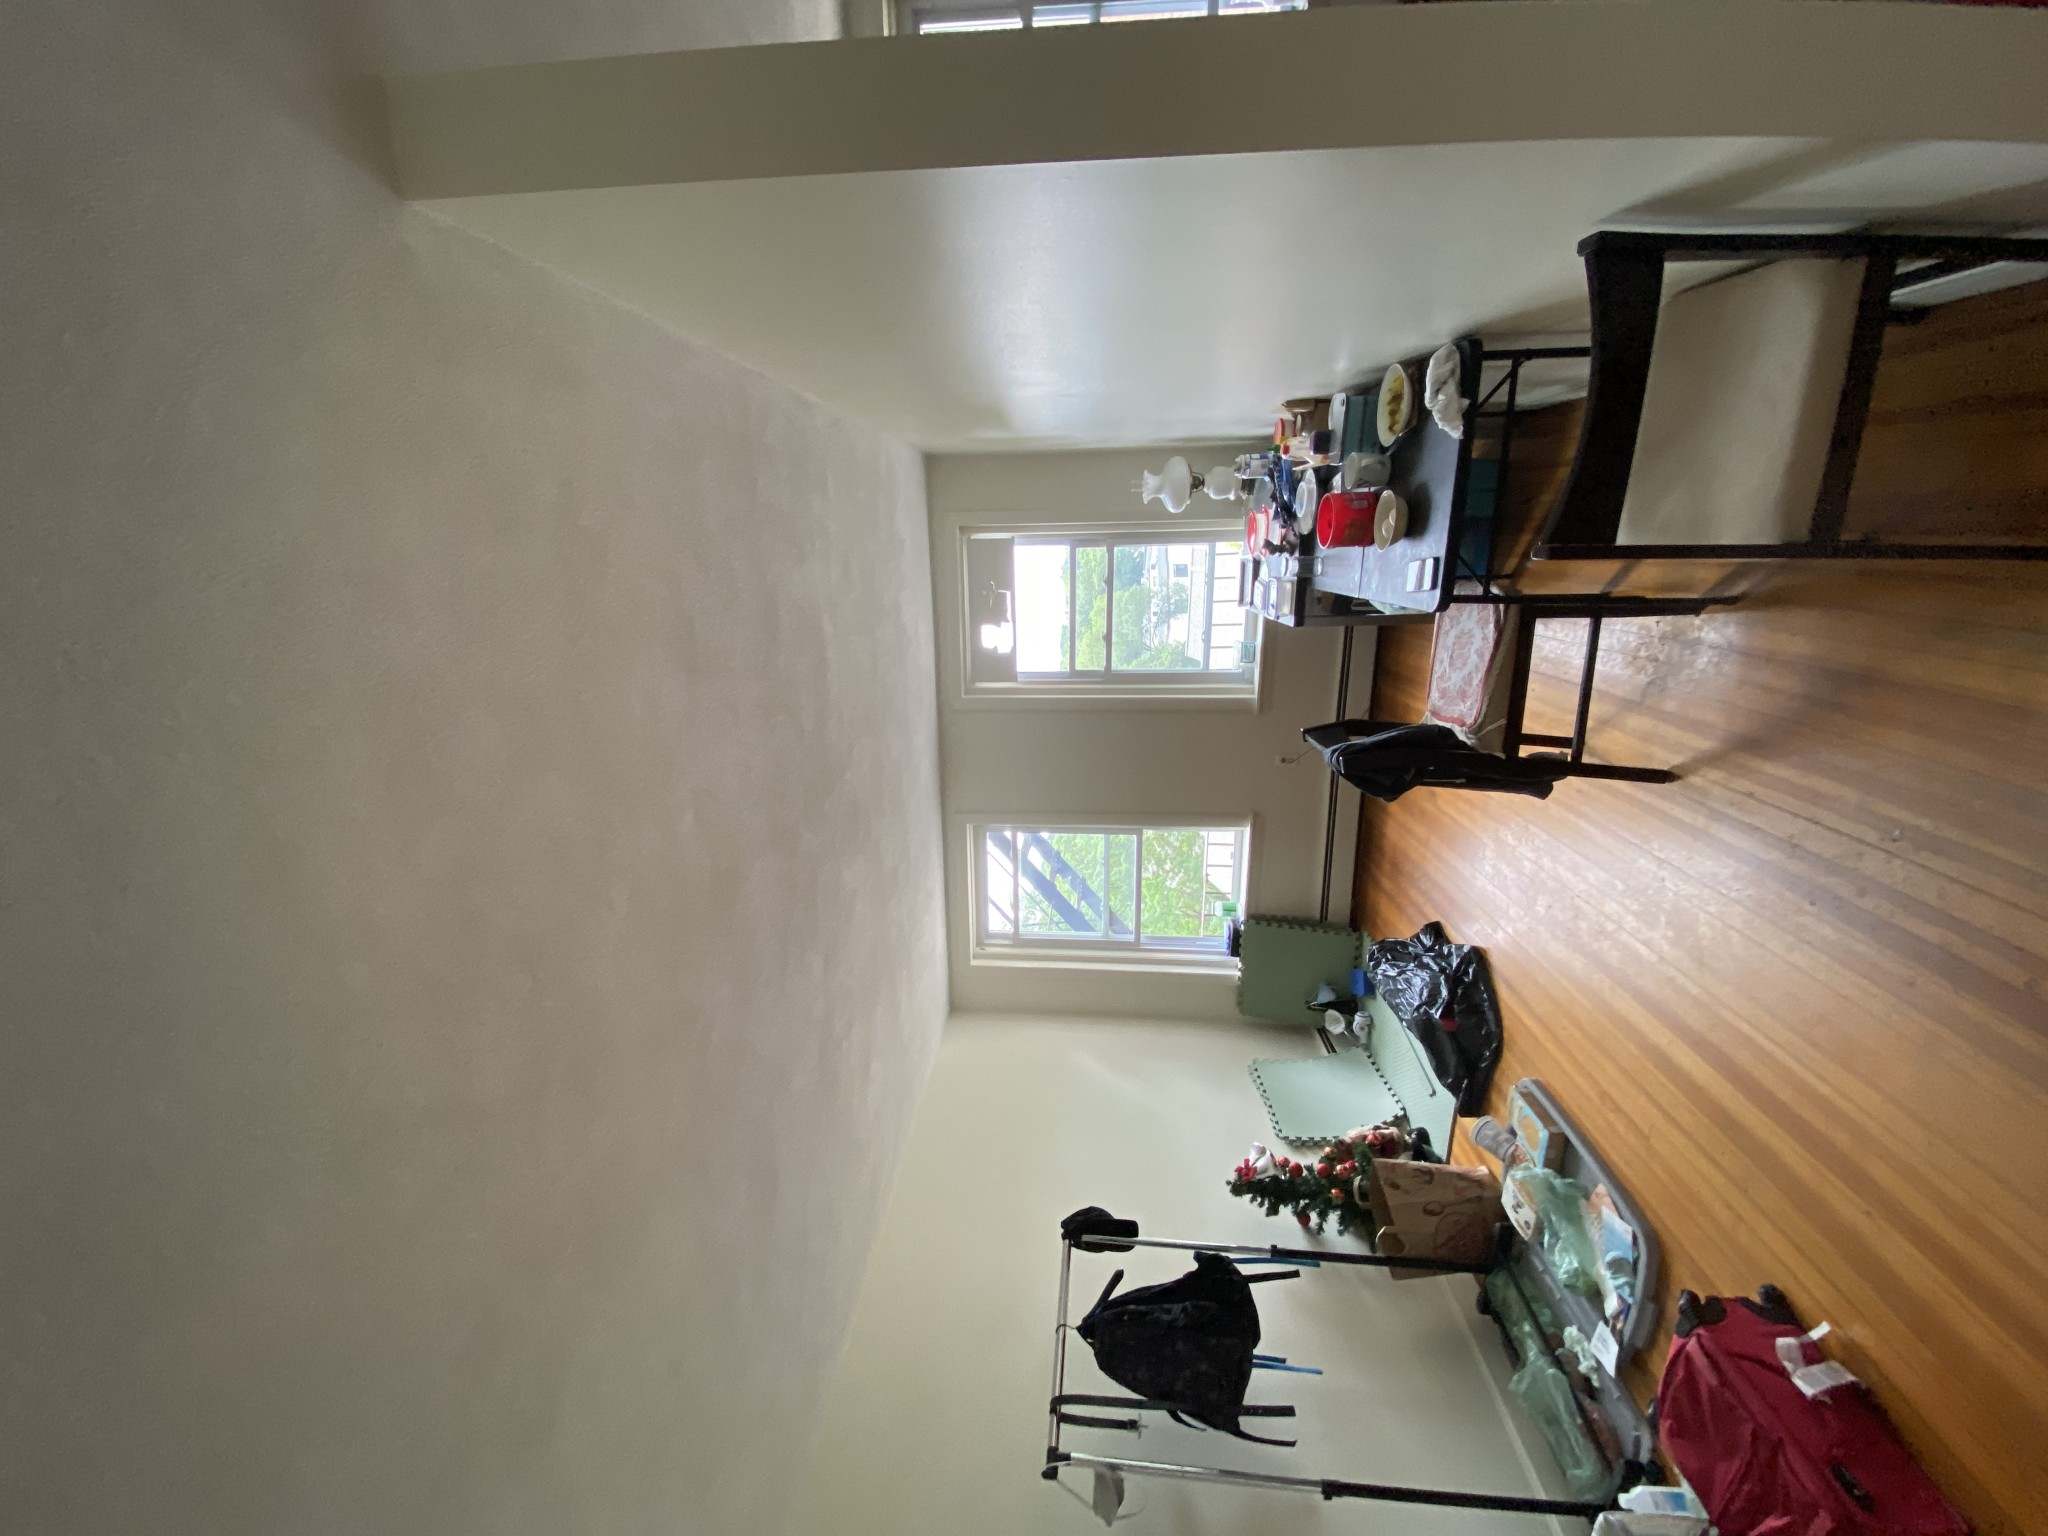 2 Beds, 1 Bath apartment in Brookline for $2,495